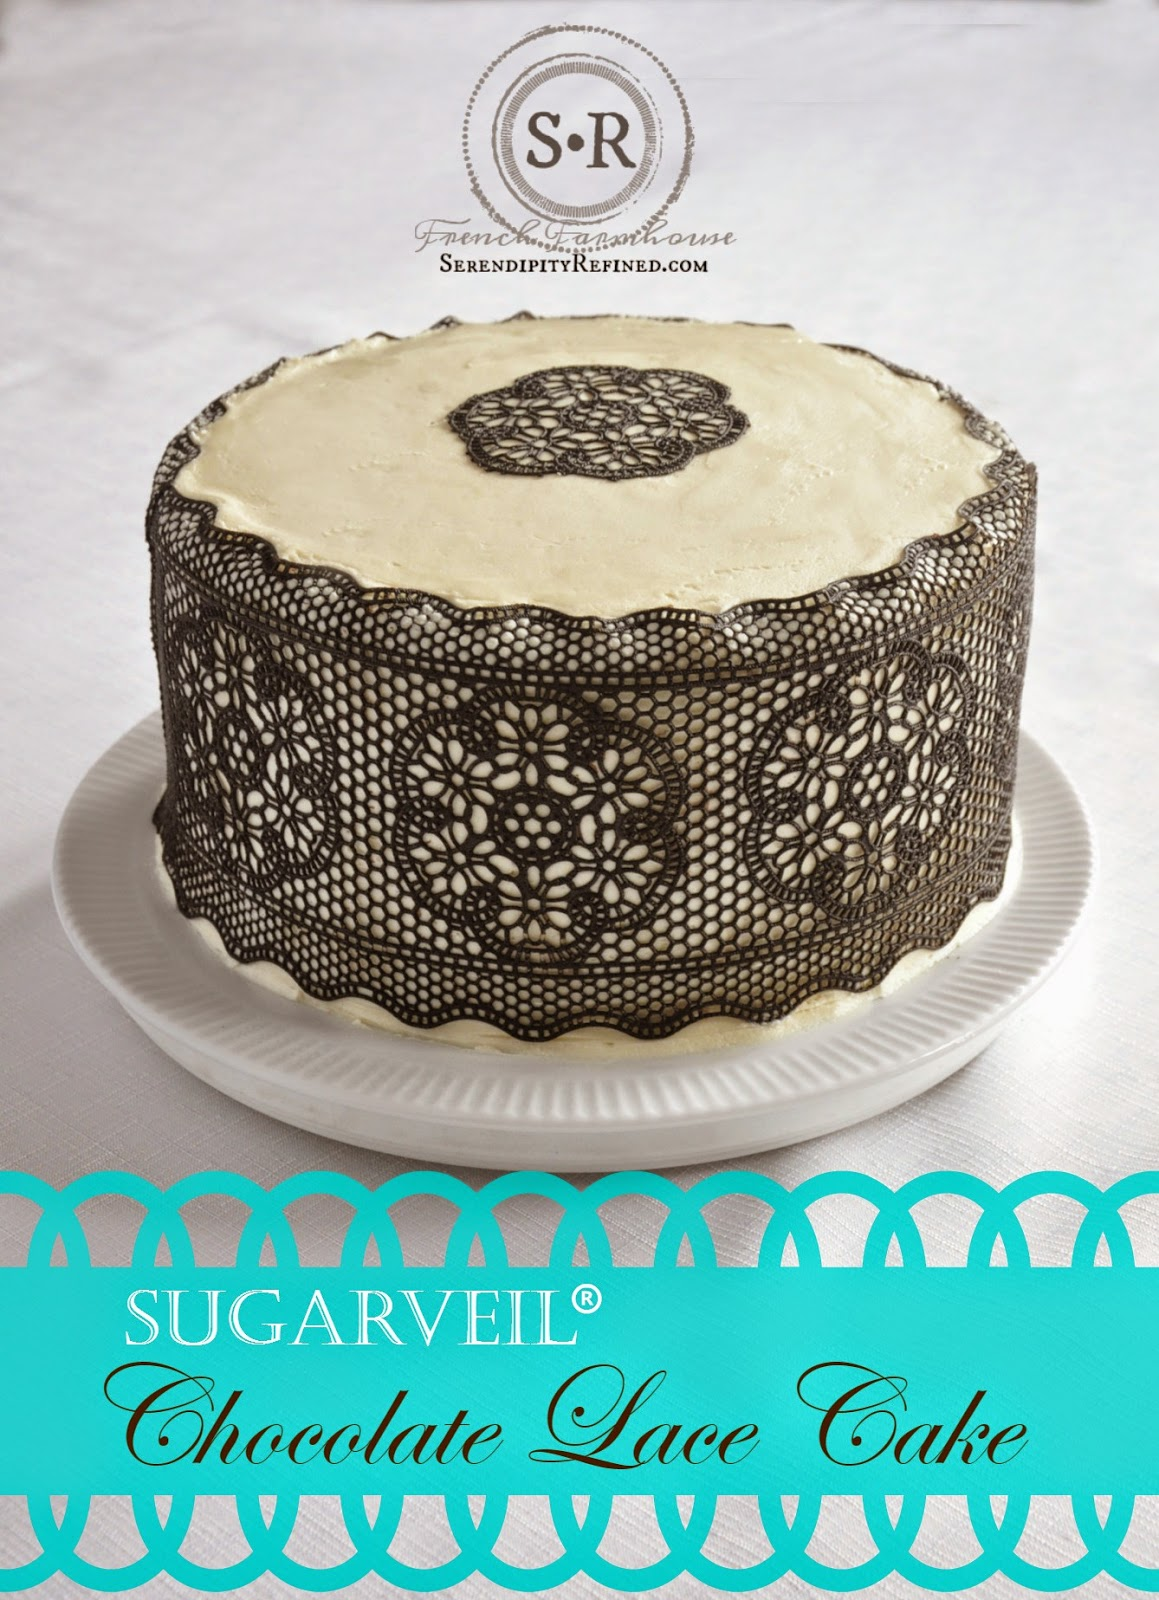 Serendipity Refined Blog: Easy Chocolate Lace Cake